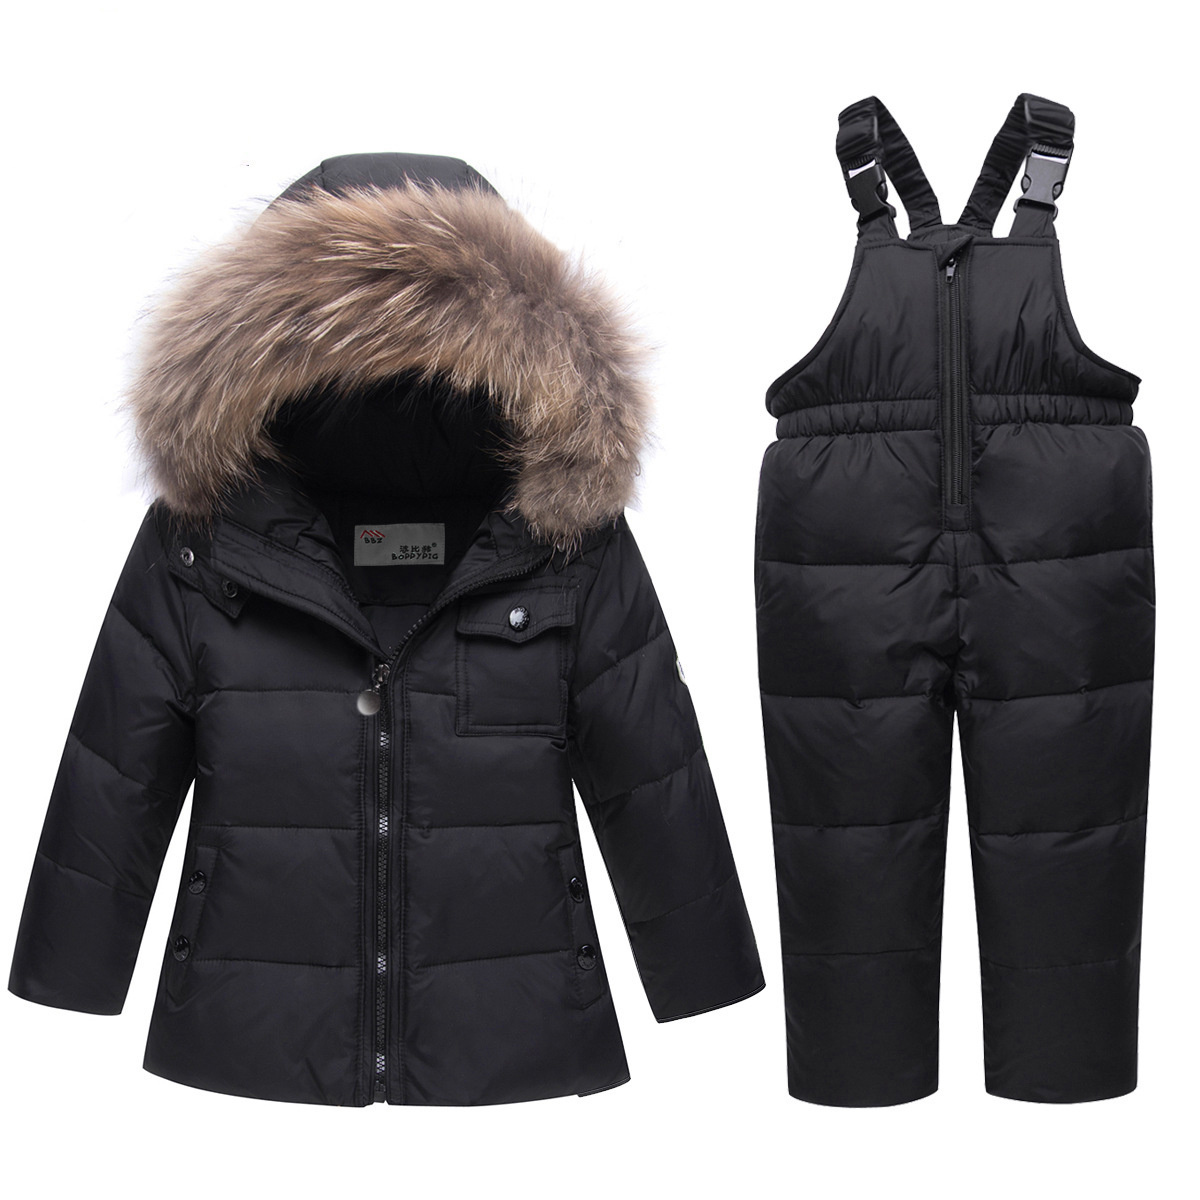 59f4d00adf4a Clothing Sets Infant Baby boy girl clothes Winter Coat Snowsuit Duck Down  Jacket Girls Outfits Sn